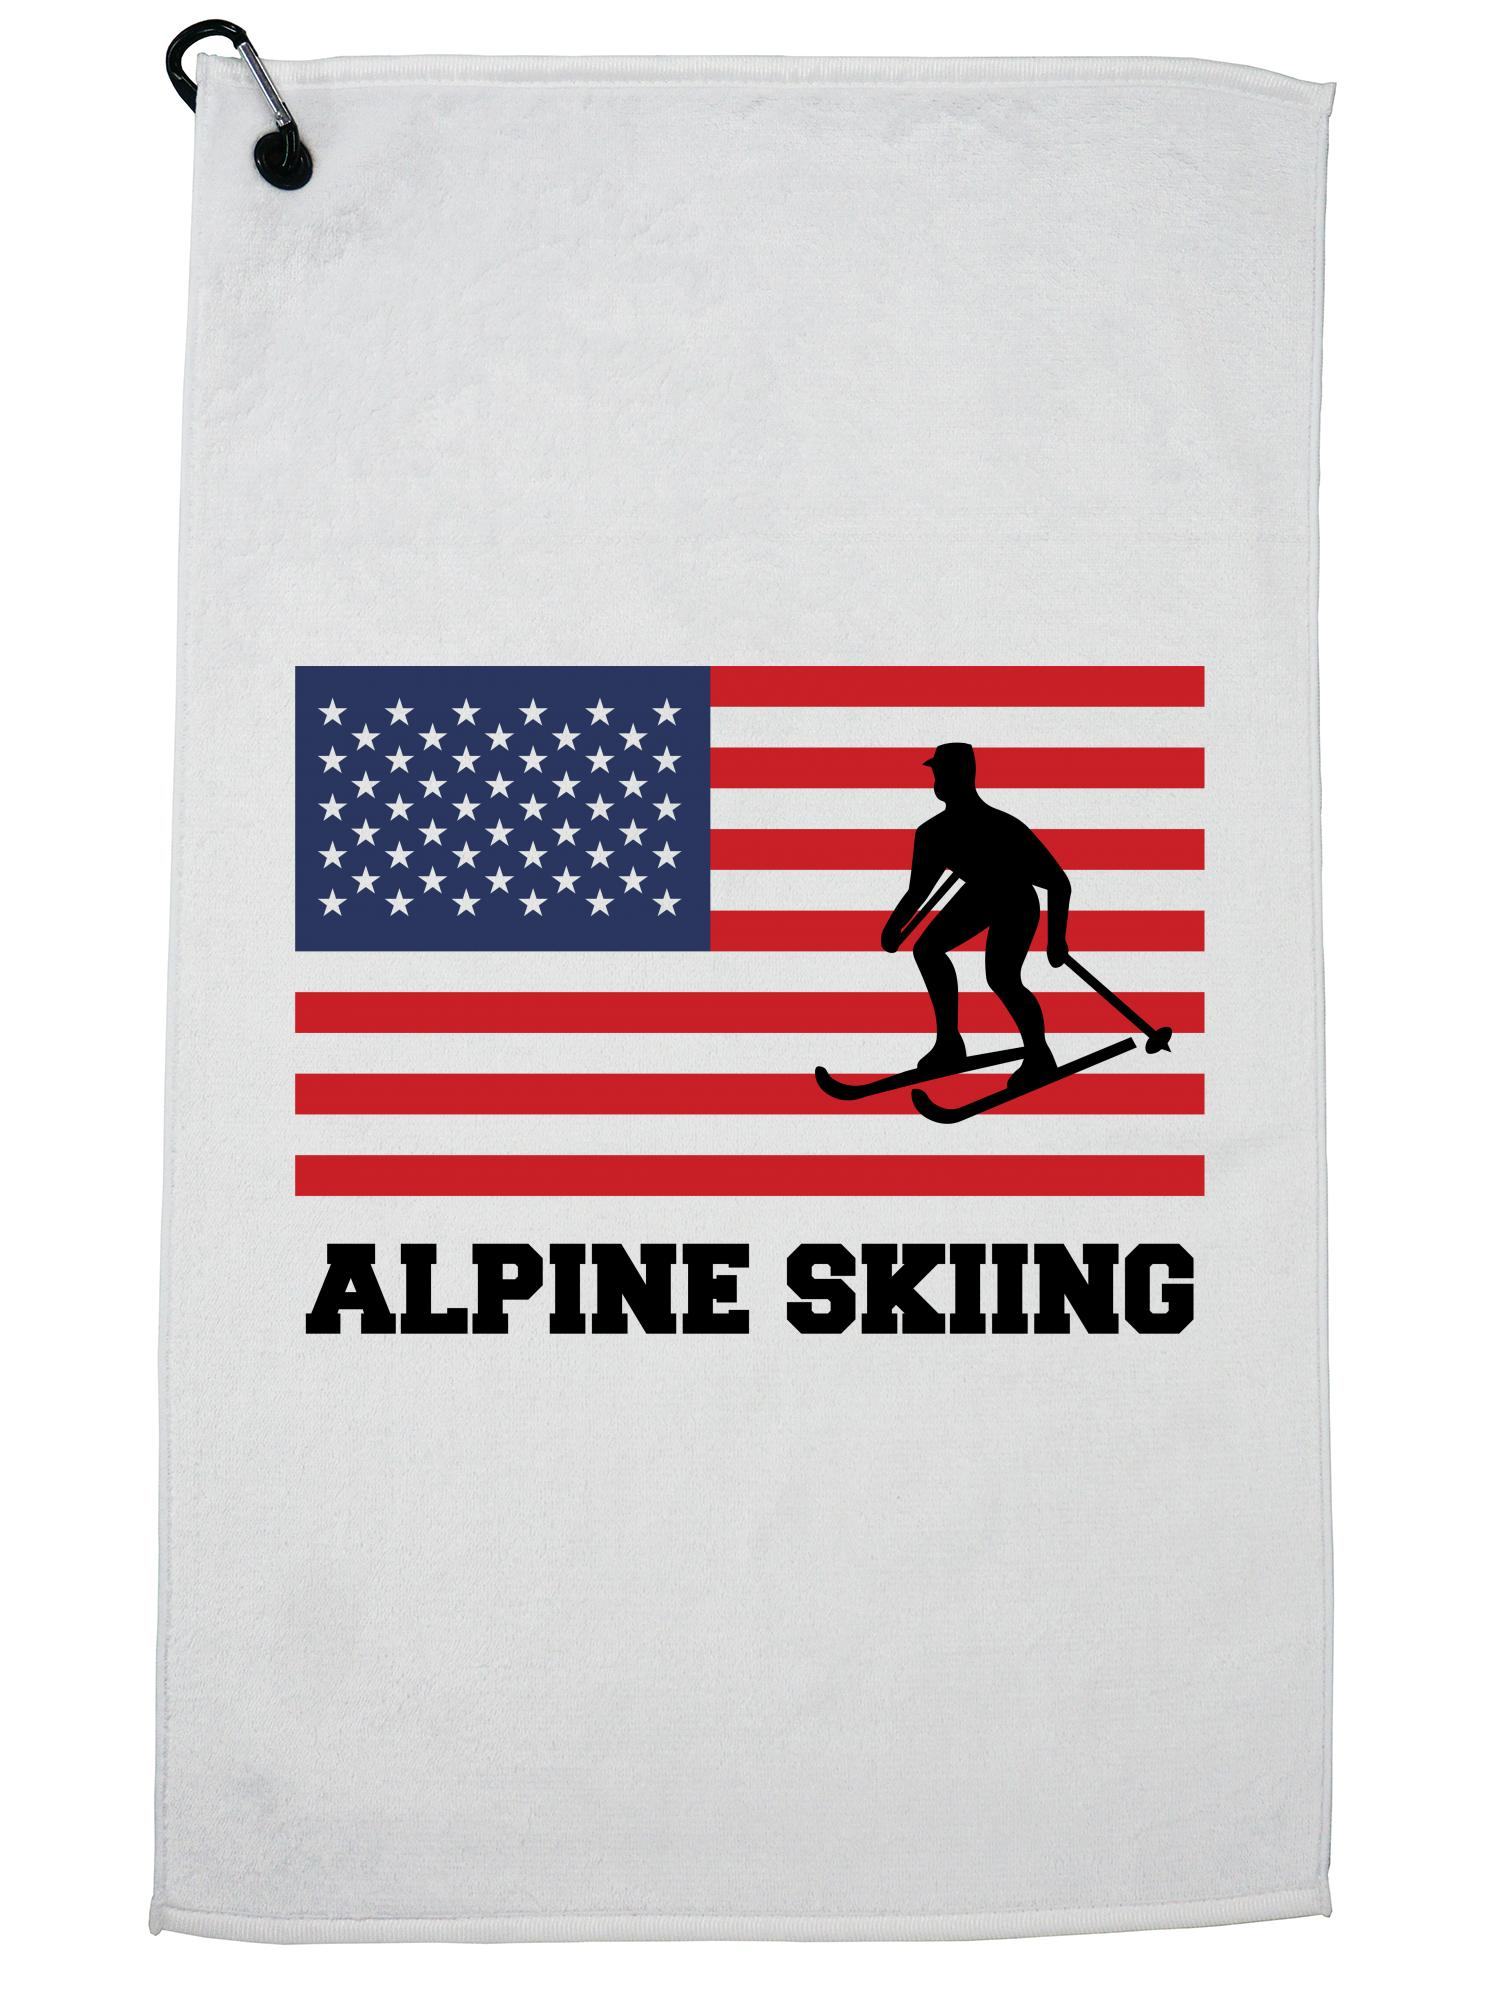 USA Olympic Alpine Skiing Flag Silhouette Golf Towel with Carabiner Clip by Hollywood Thread